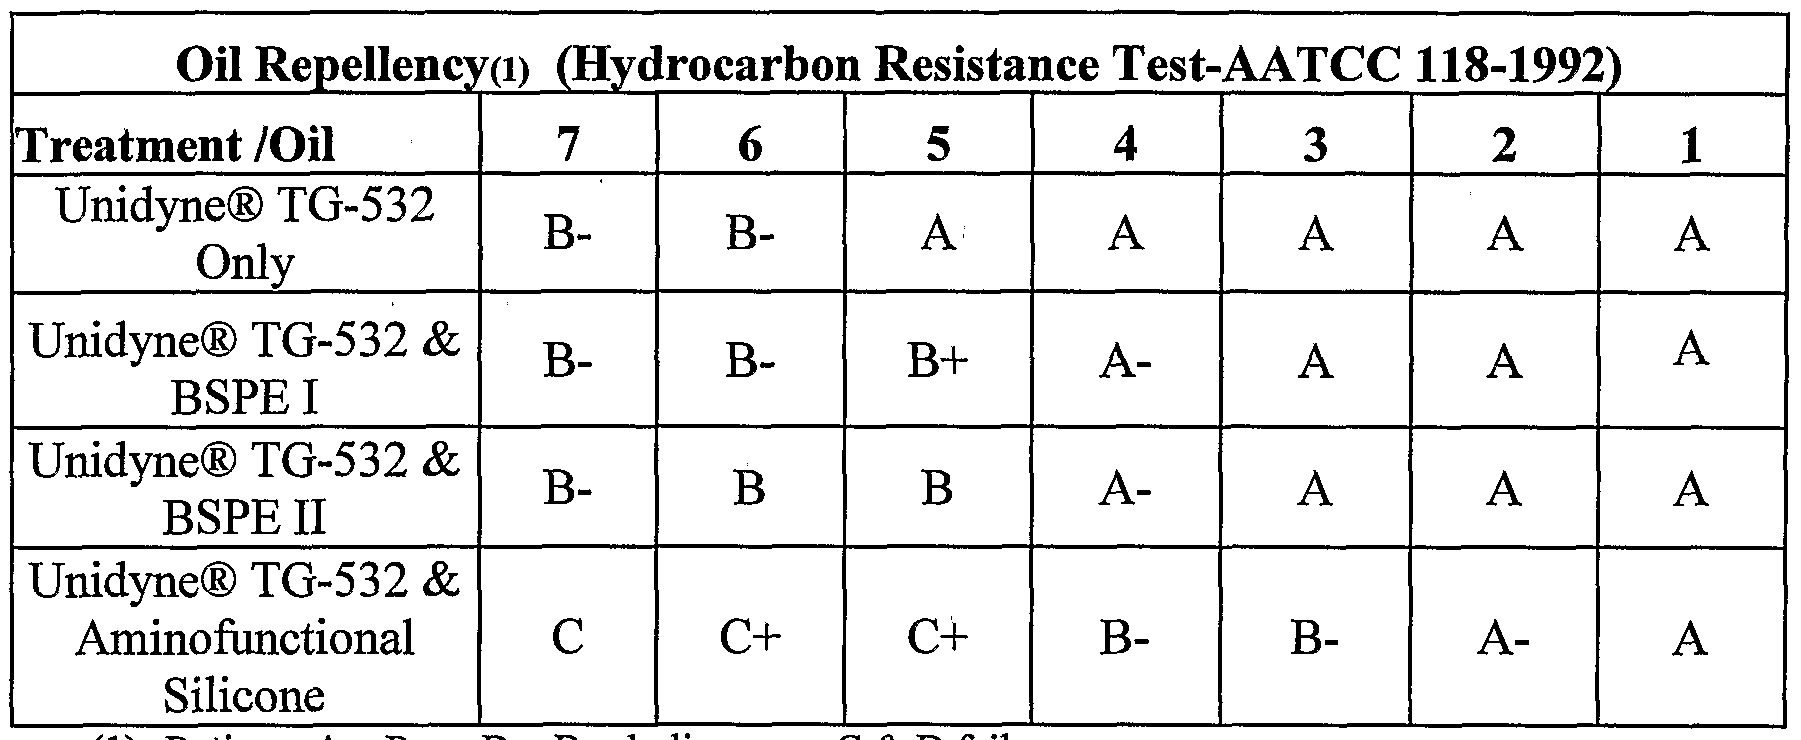 WO2005103362A1 - Textile treatments using fluoropolymer